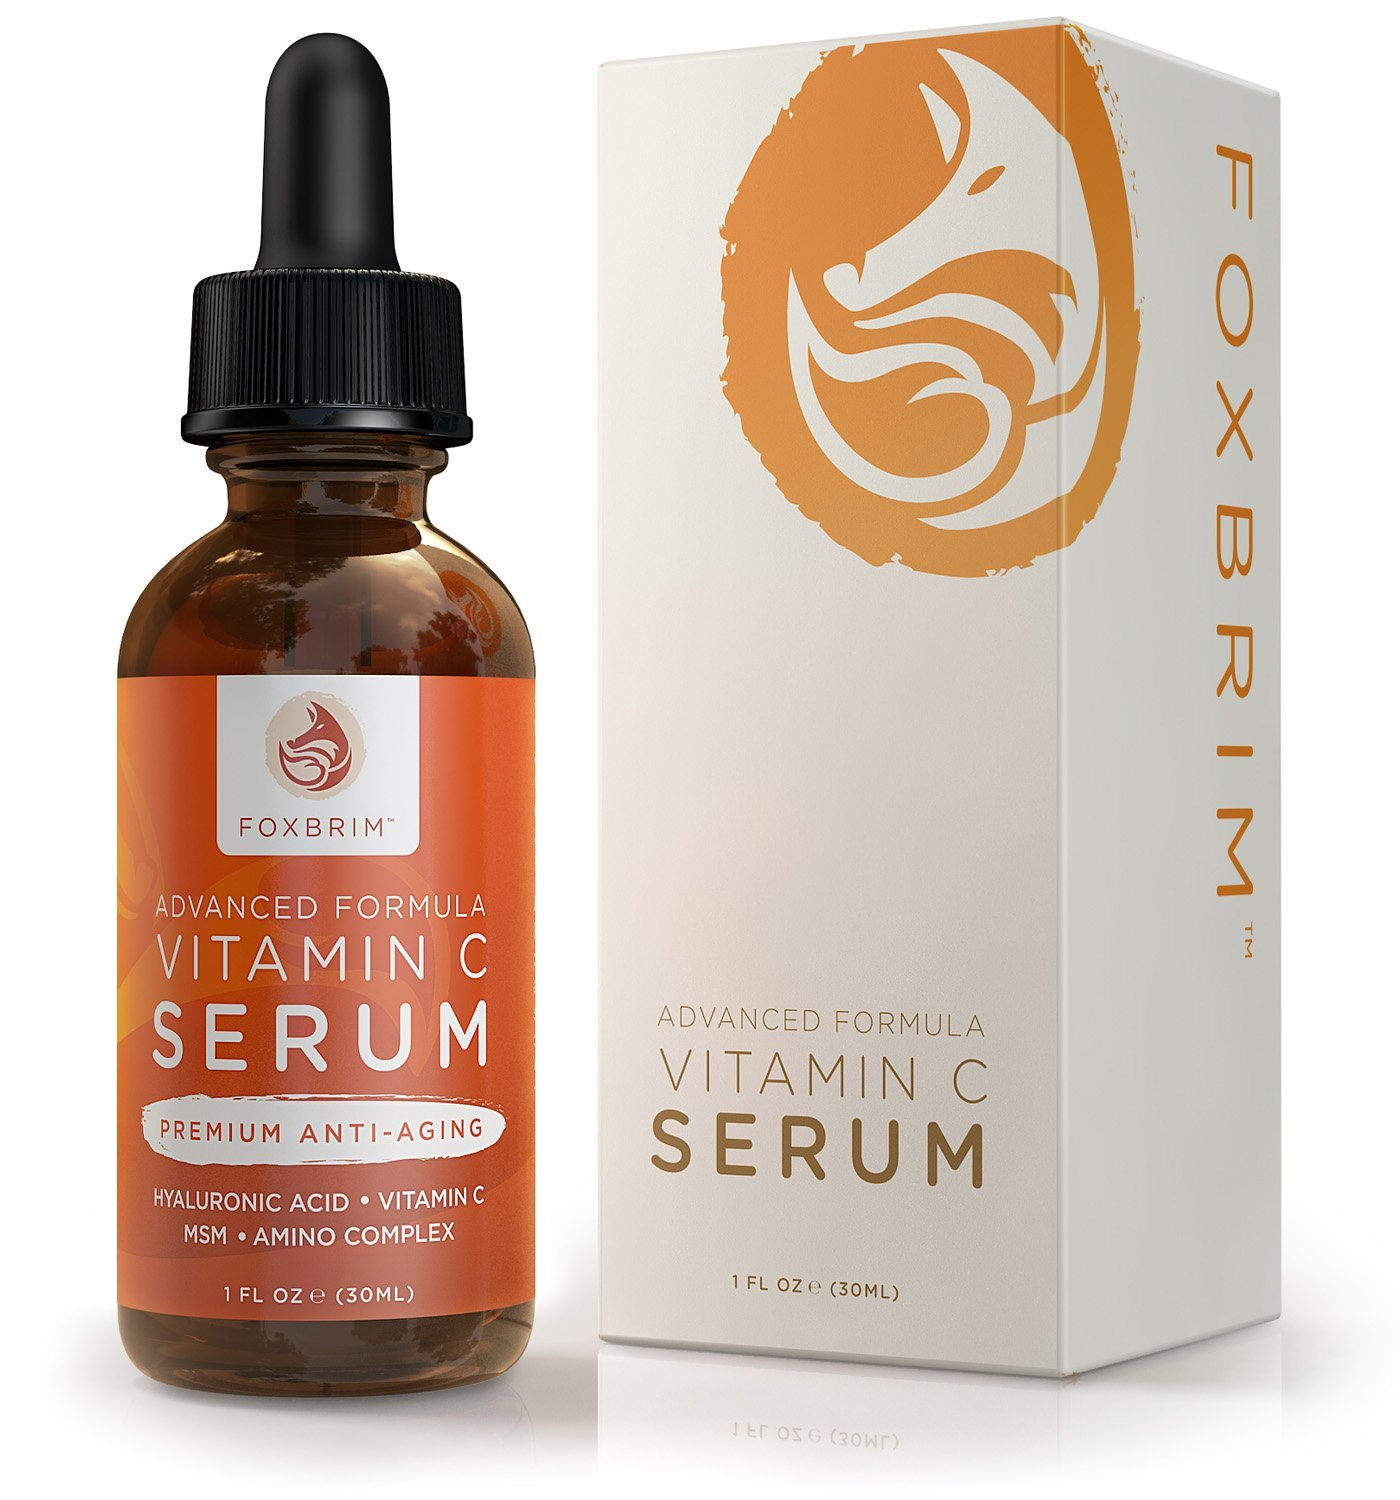 Vitamin C For Face Reviews Foxbrim Vitamin C Serum for Face